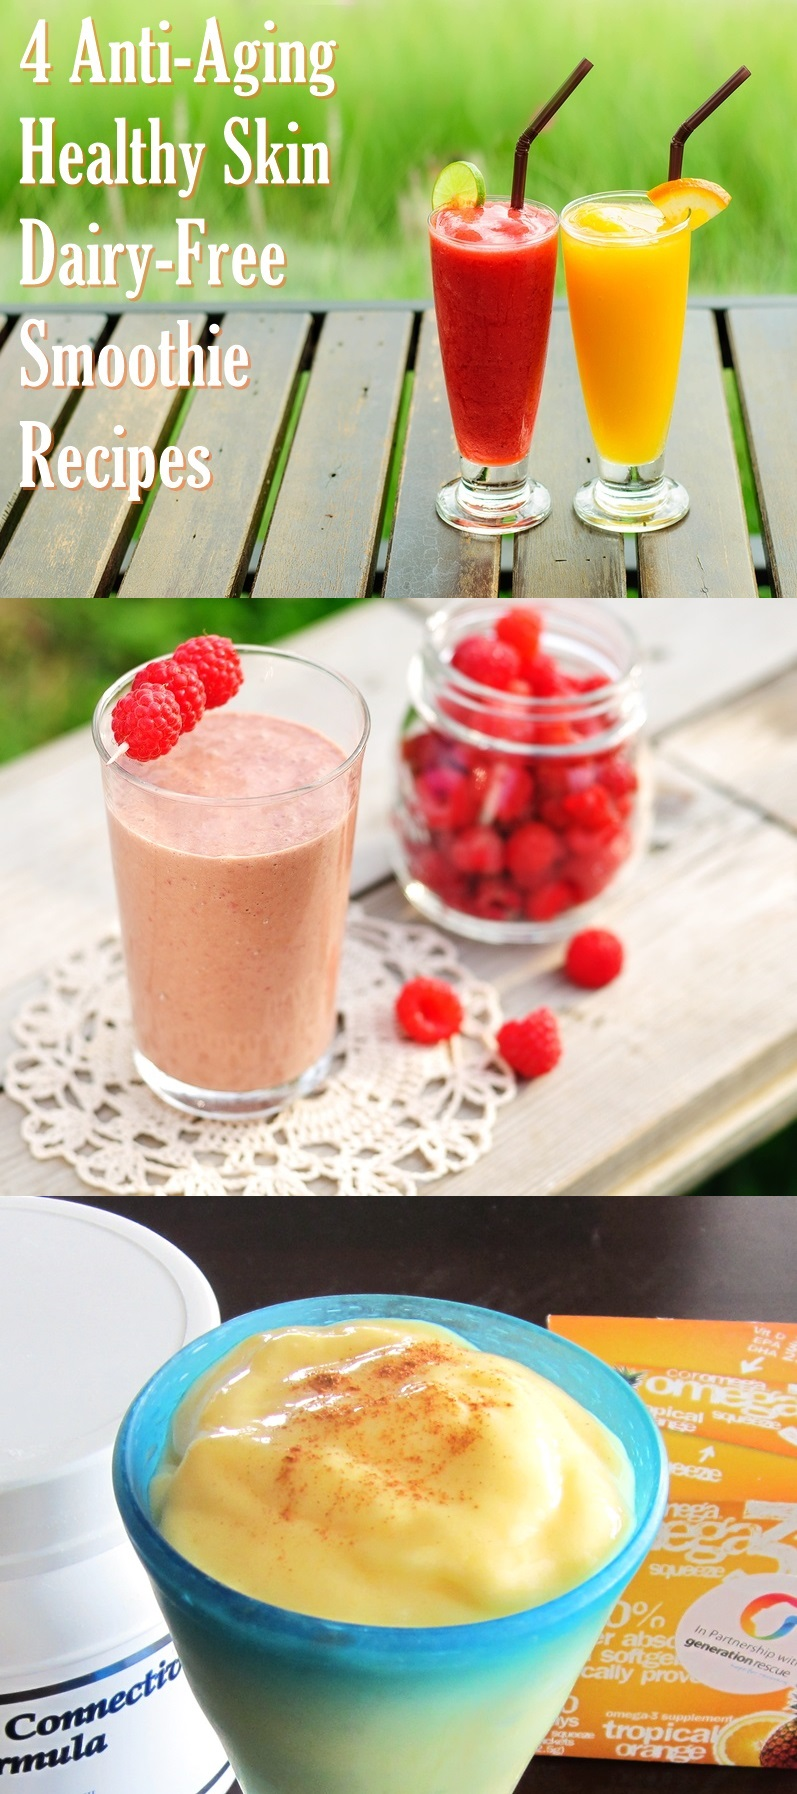 4 Dairy-Free, Anti-Aging, Healthy Skin Smoothie Recipes